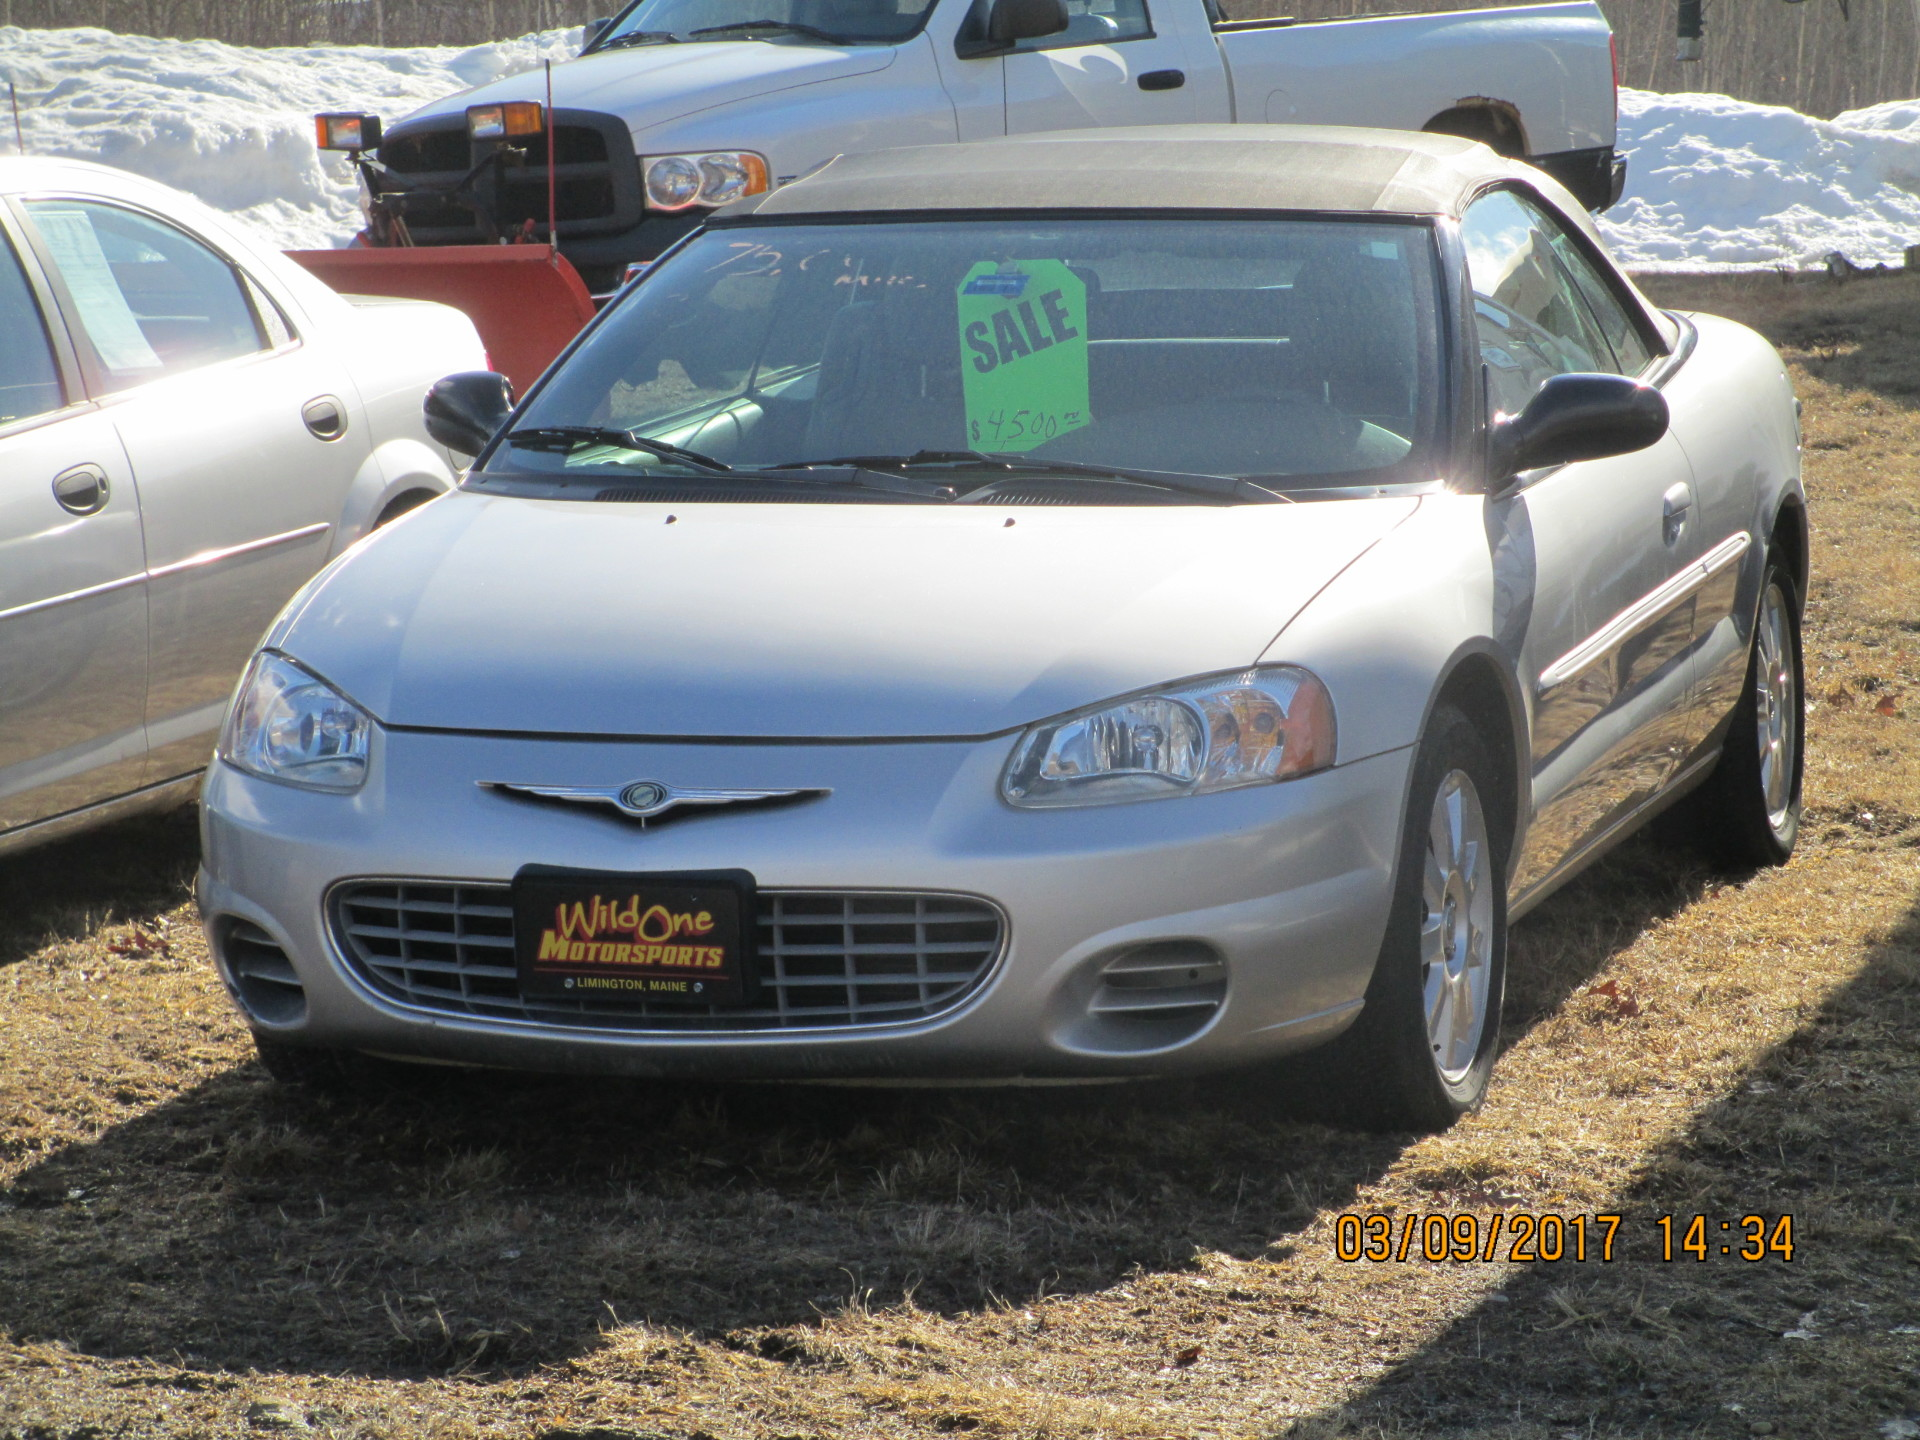 2002 Chrysler Sebring - Silver Convertible